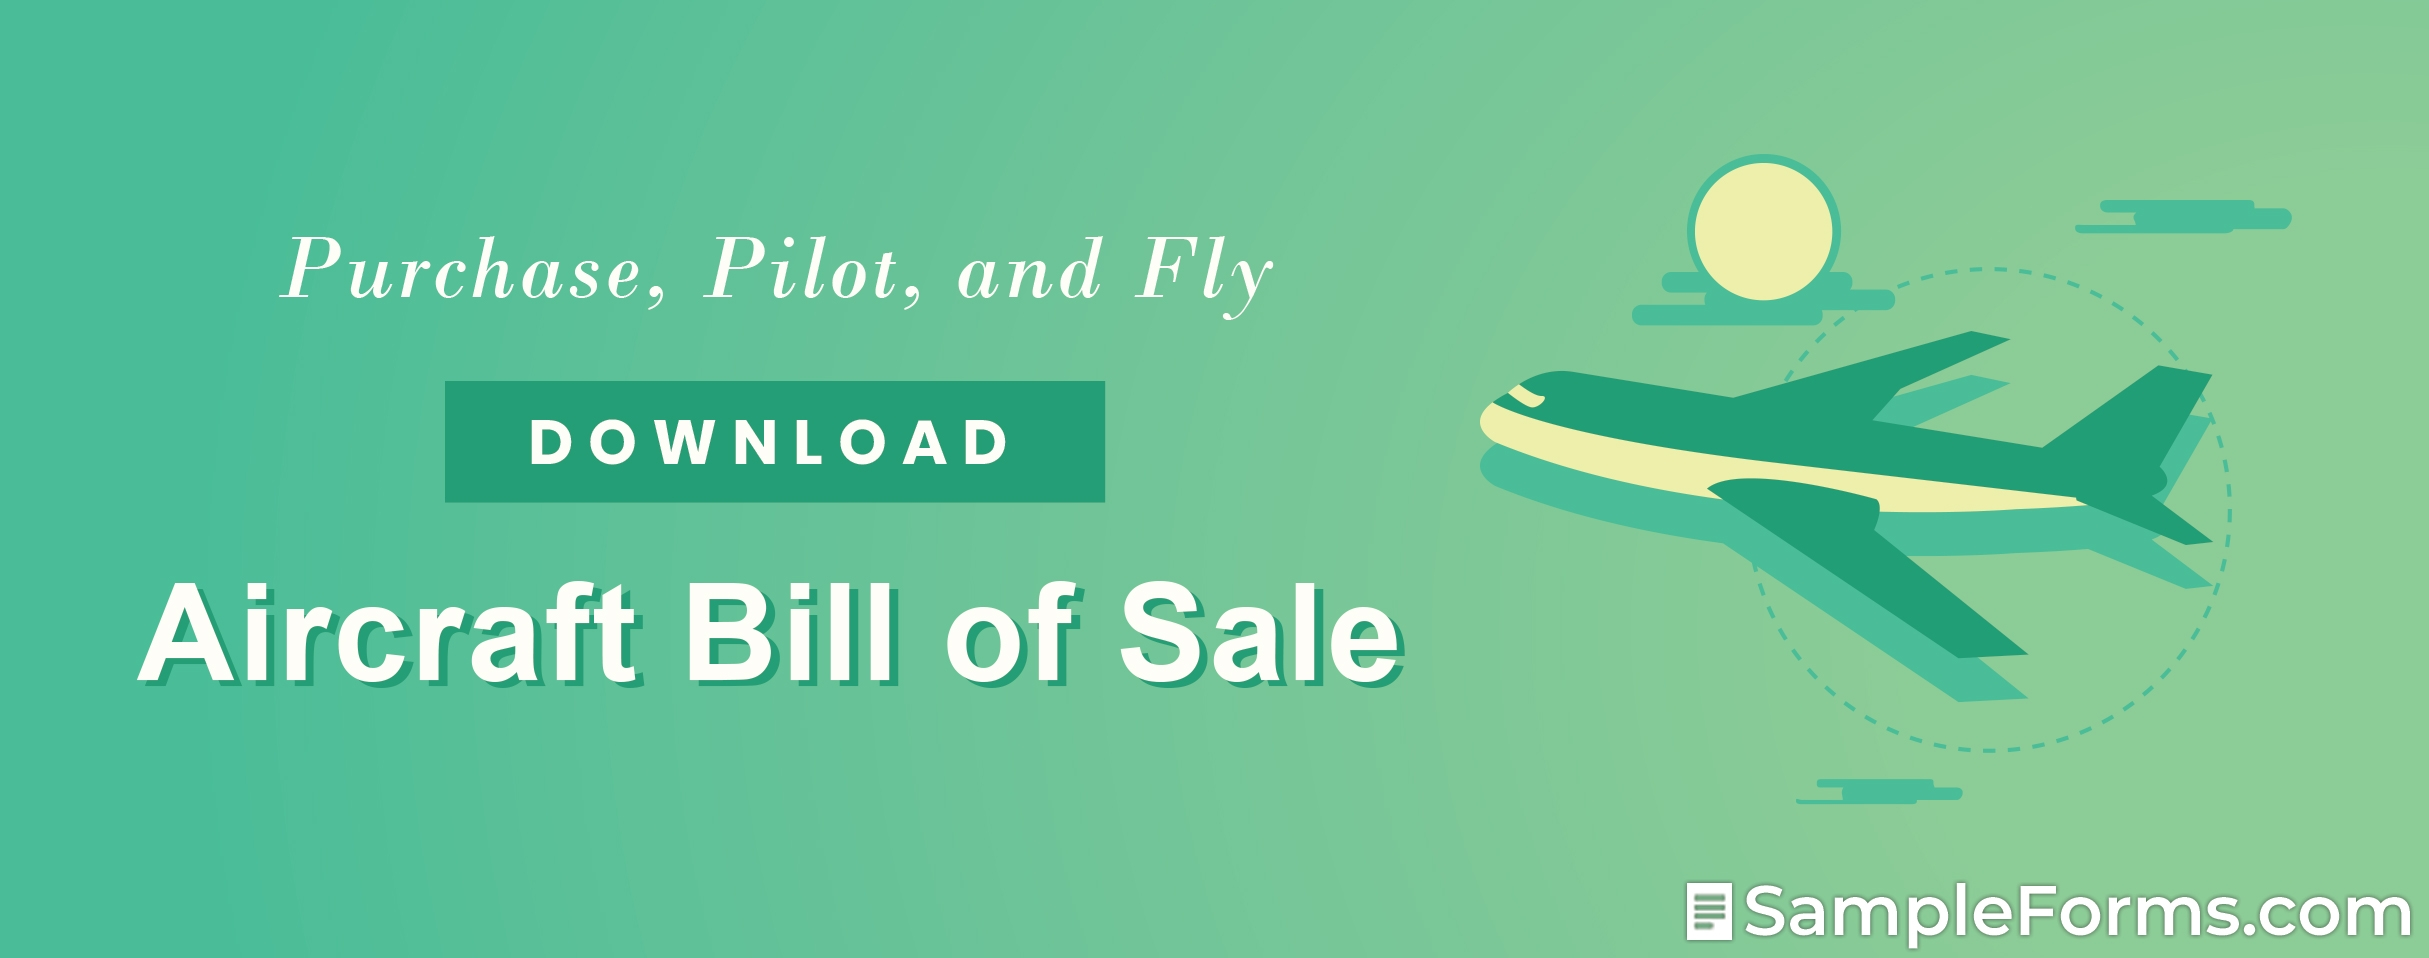 Aircraft Bill of Sale1